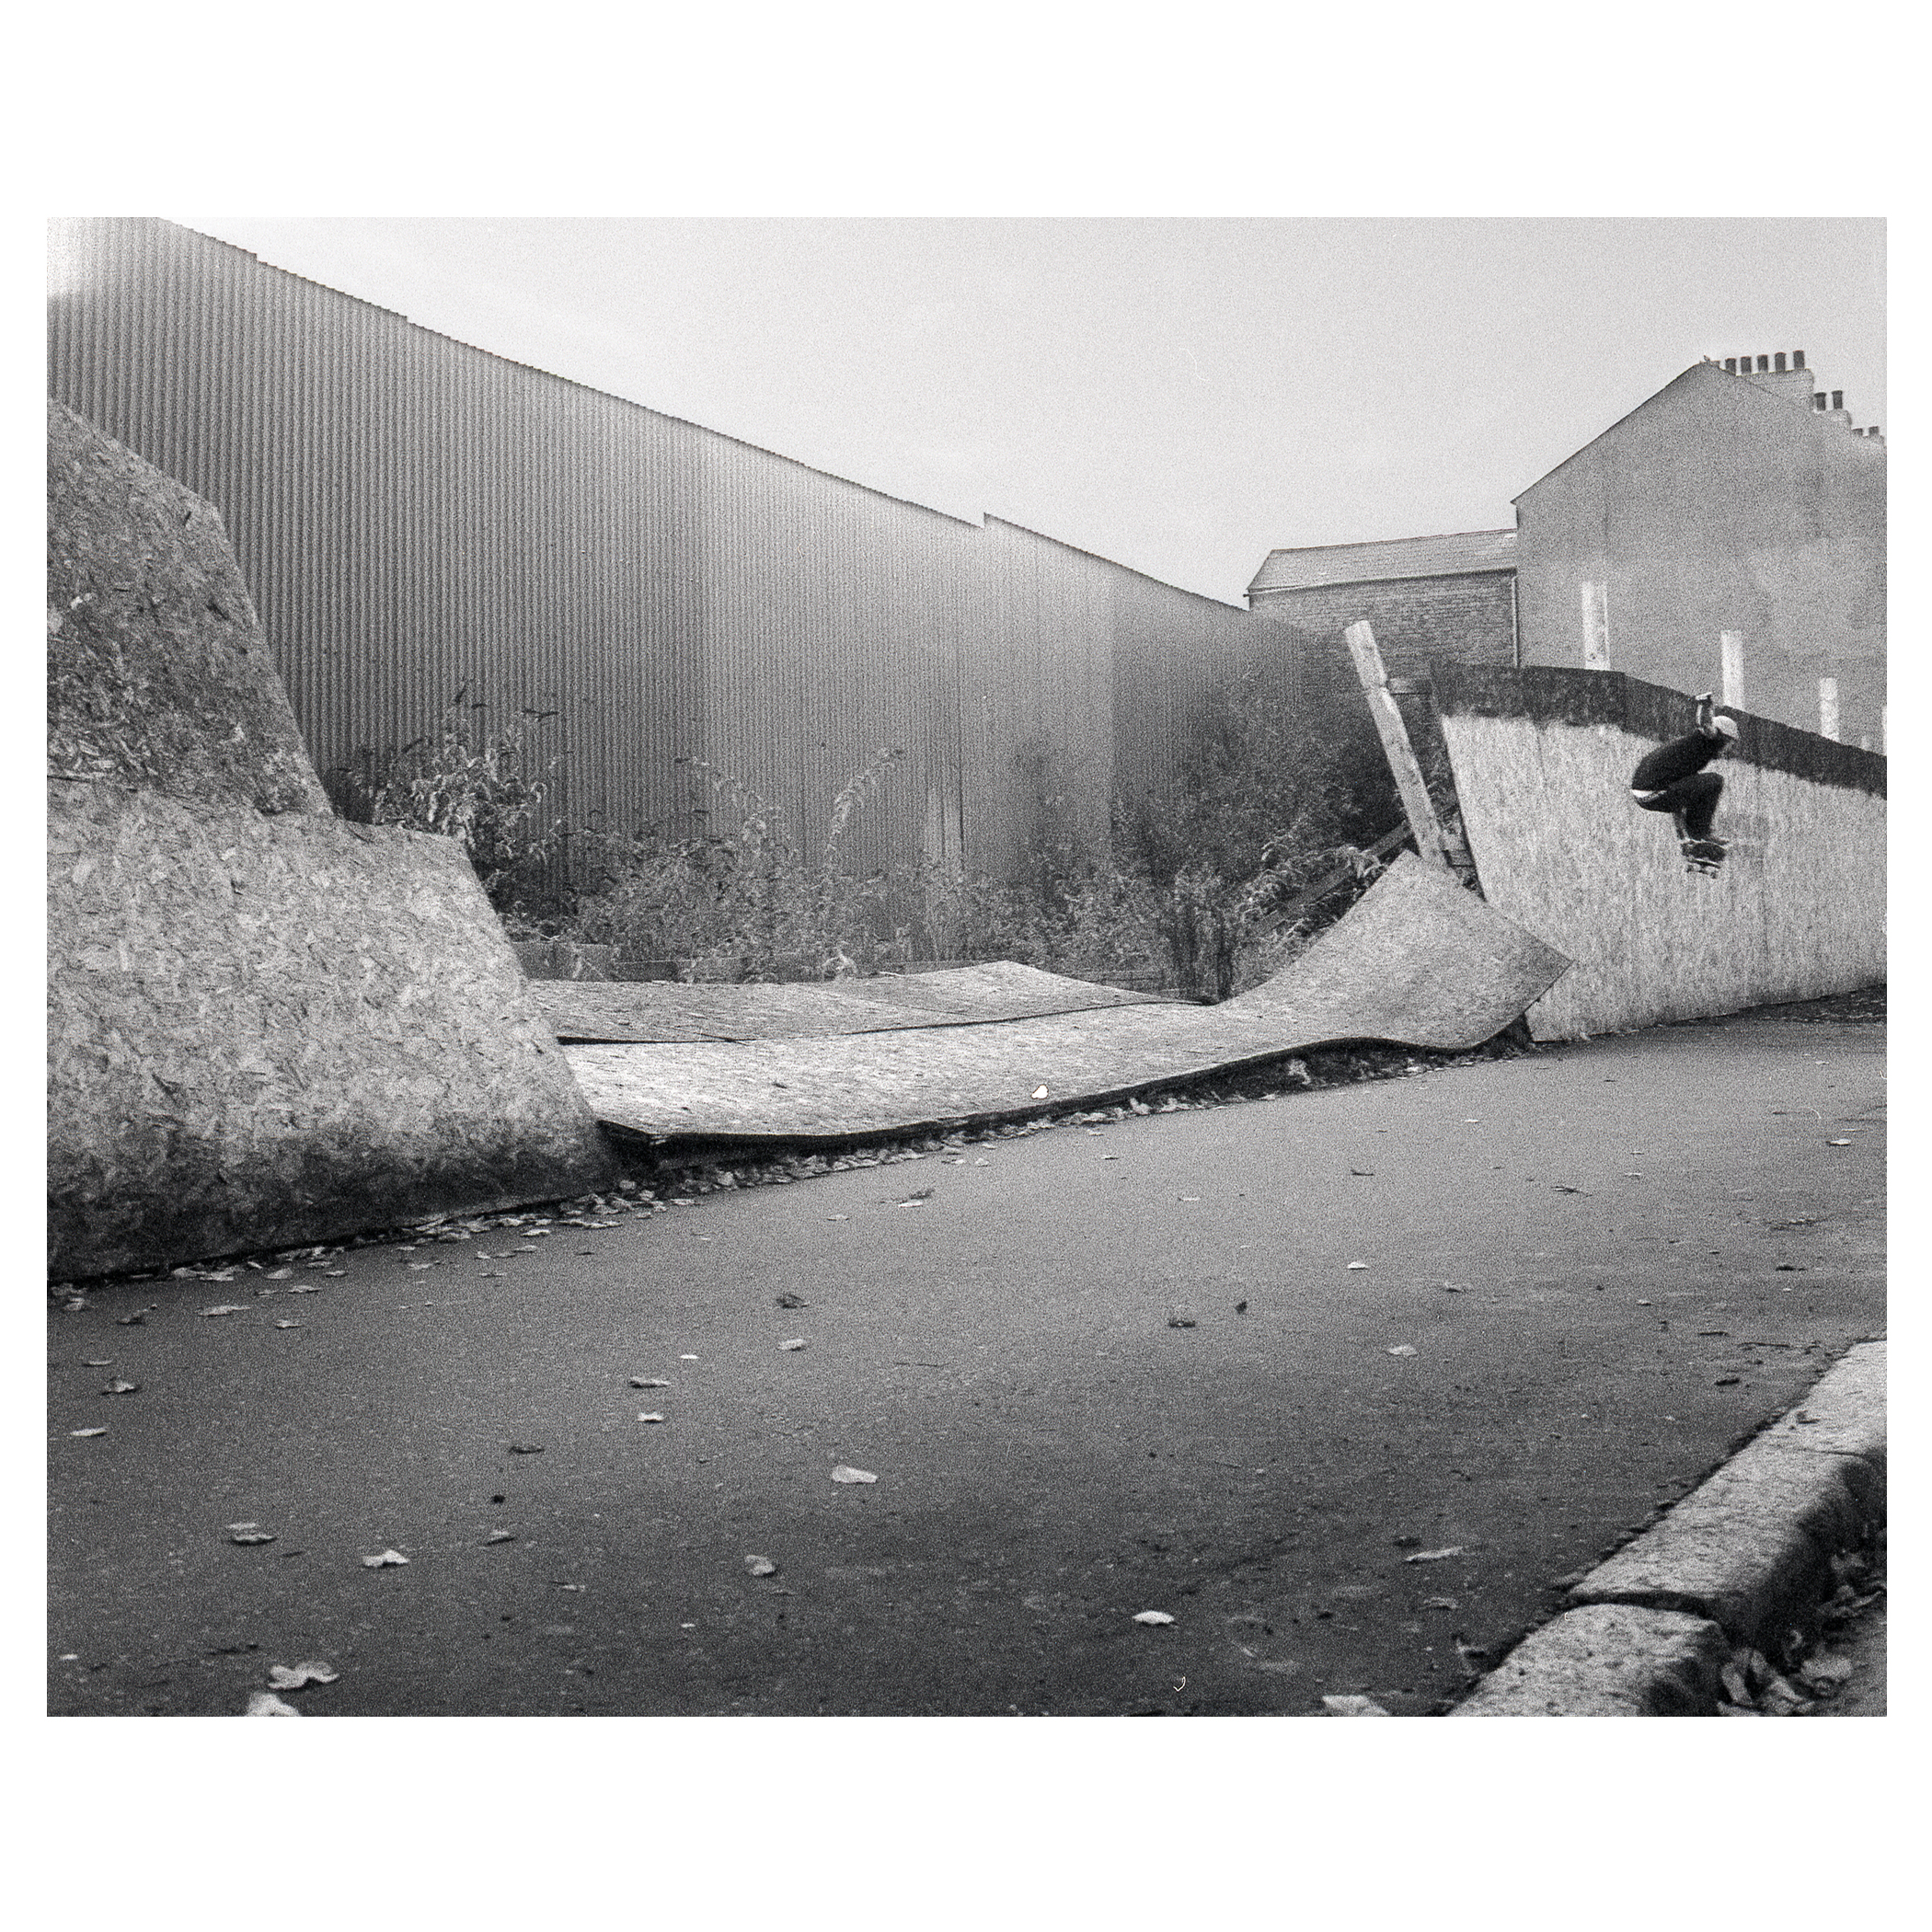 Keith 'Mini' Brown melon grab - Duncan Gardens.  Published in issue 220 of Sidewalk Mag as part of 'Digressions: Stu Robinson's Northern Ireland' article.